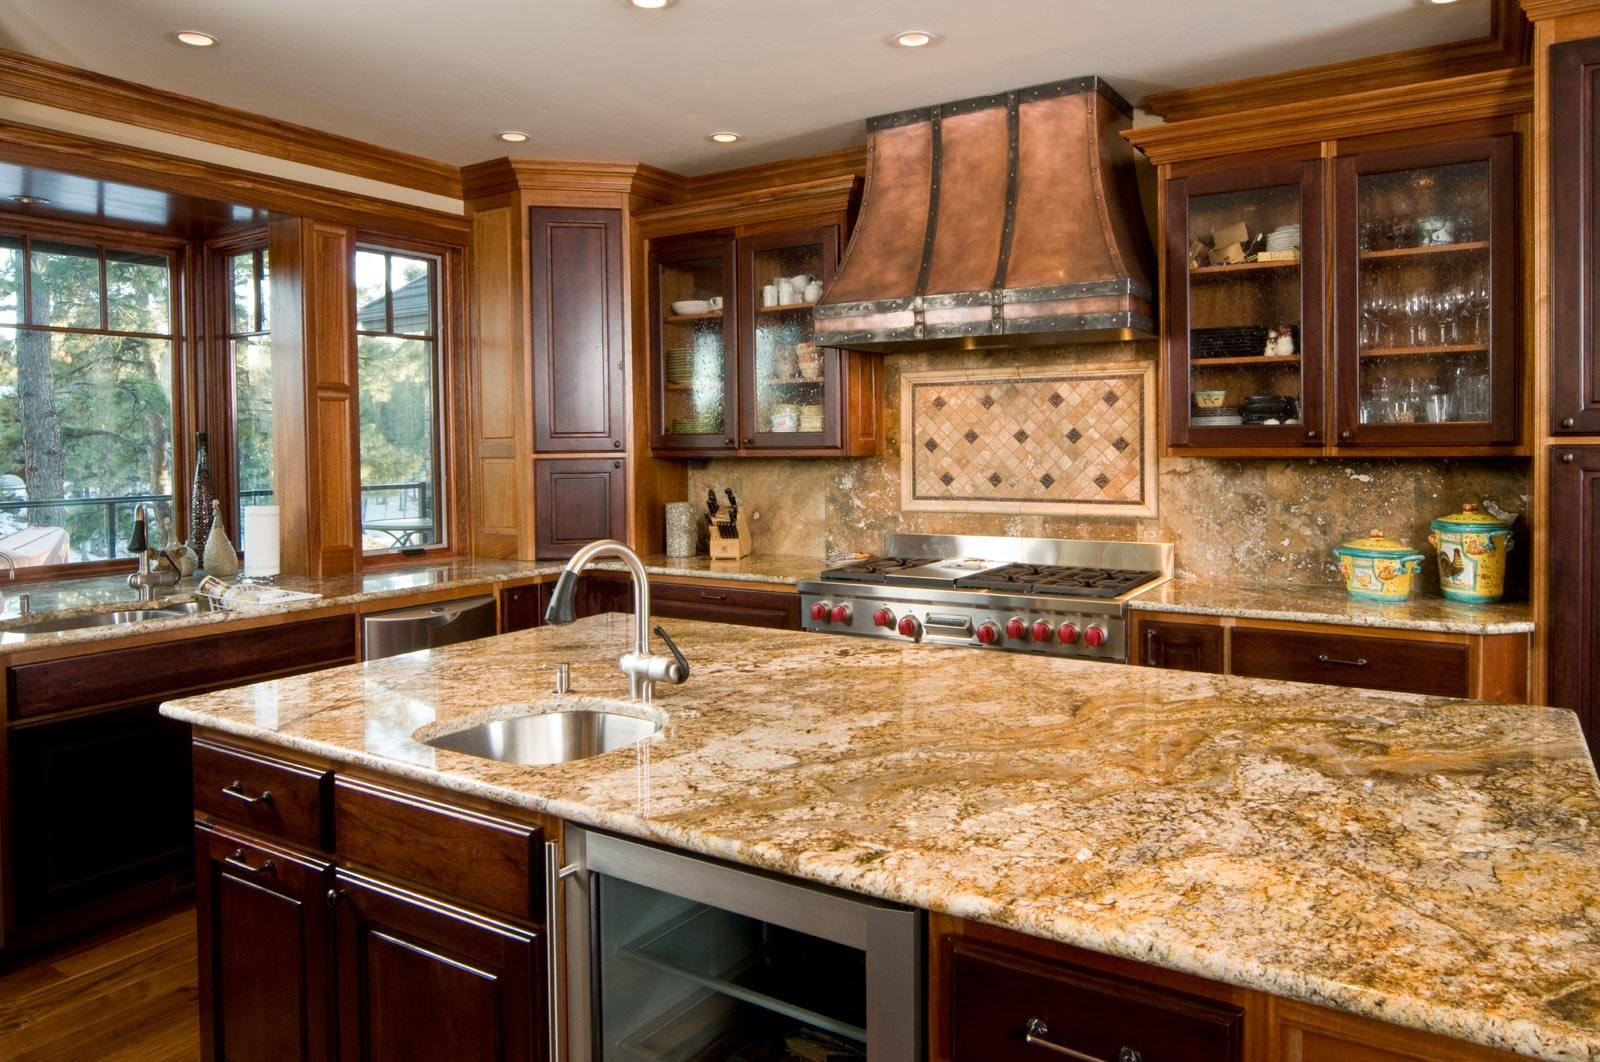 tops countertops austin kitchen counter index htm countertop quartz archivos bathroom marble granite houston